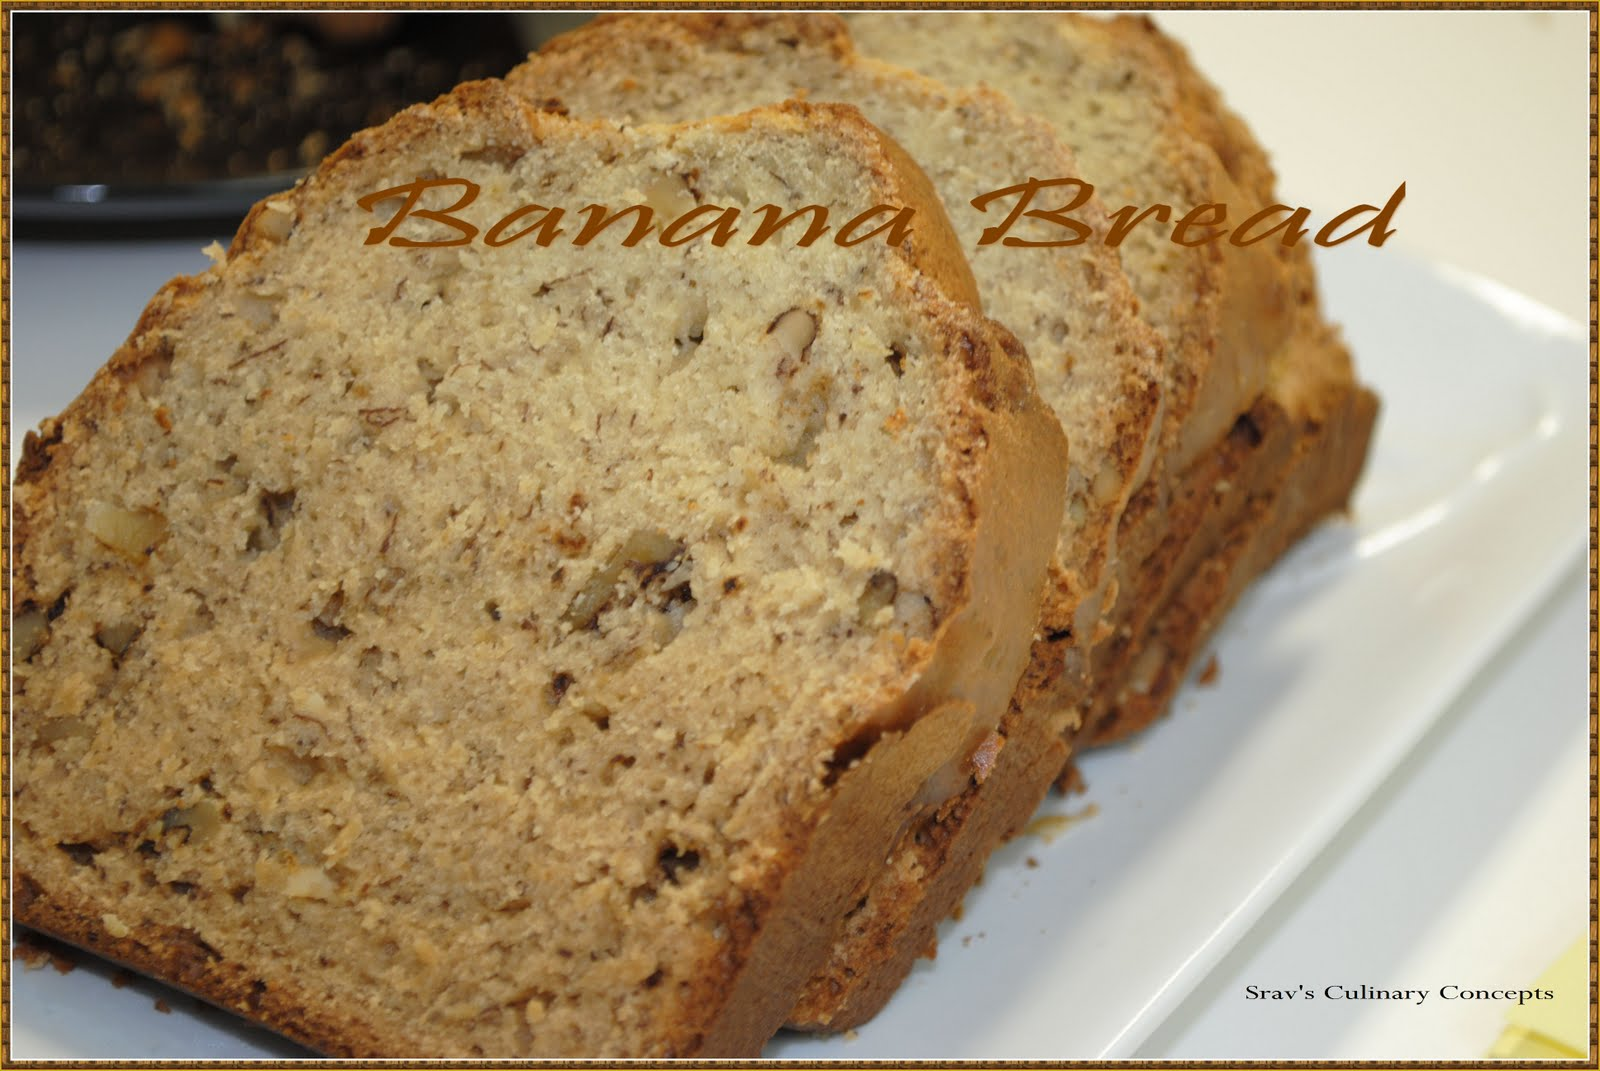 When we pull this banana bread from oven the golden brown crust is ...